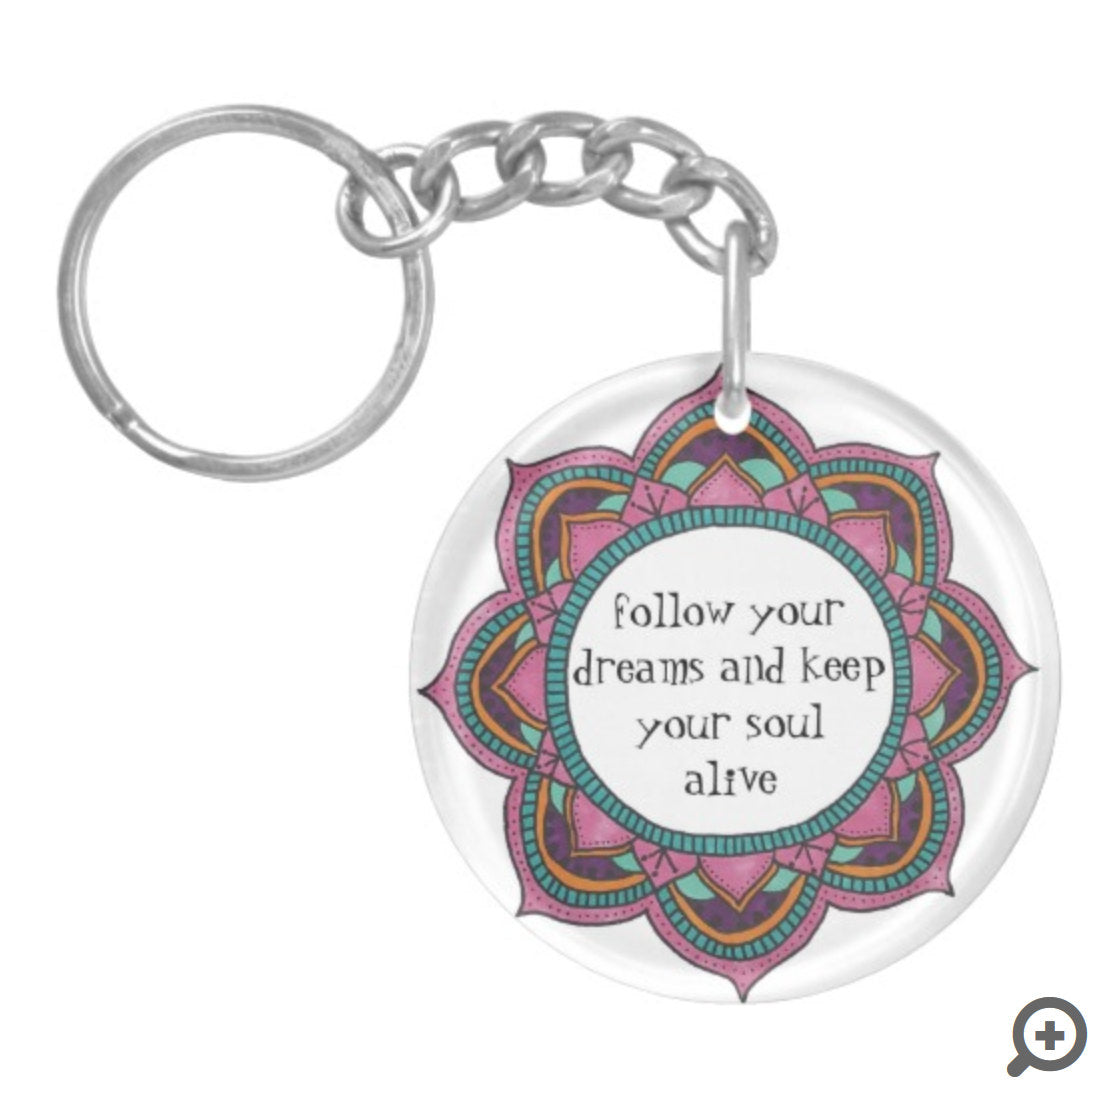 Spiritual Awakening (single-sided) Keychain Mandala Keychain Inspirational Quote